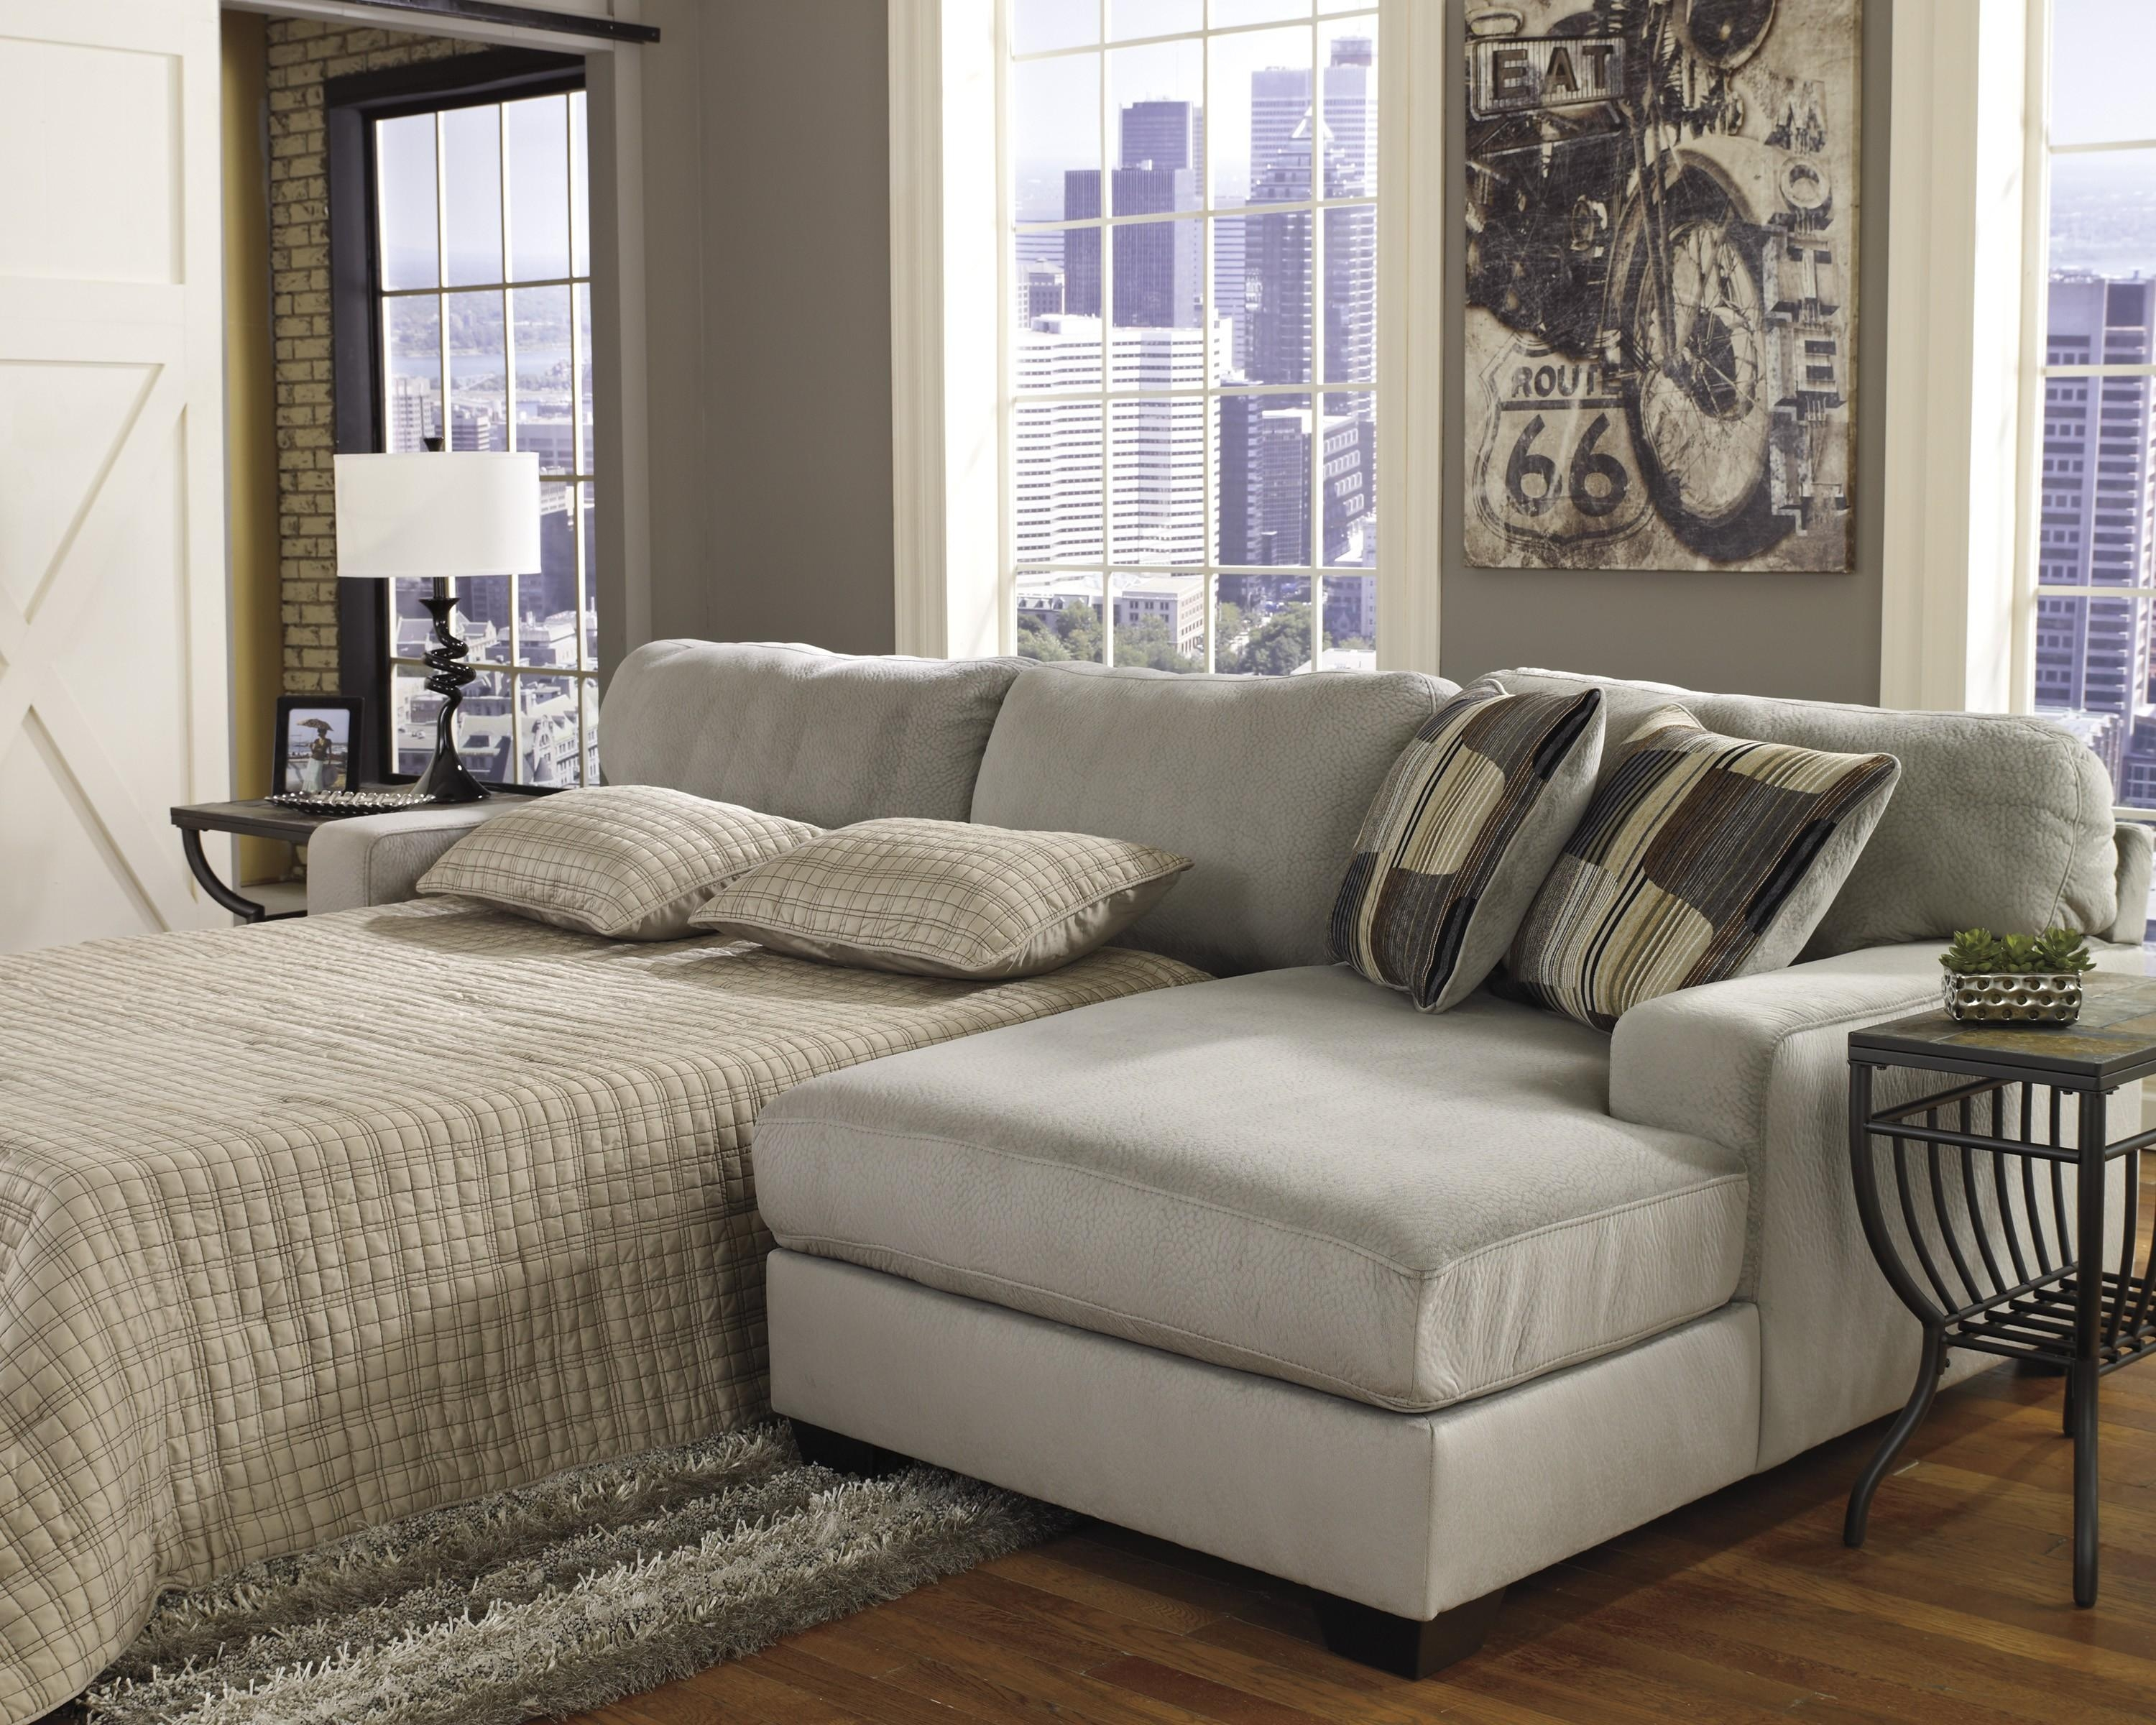 Fresh Sectional Sleeper Sofas On Sale 50 For Your Broyhill Inside Broyhill Sectional Sleeper Sofas (Image 13 of 20)